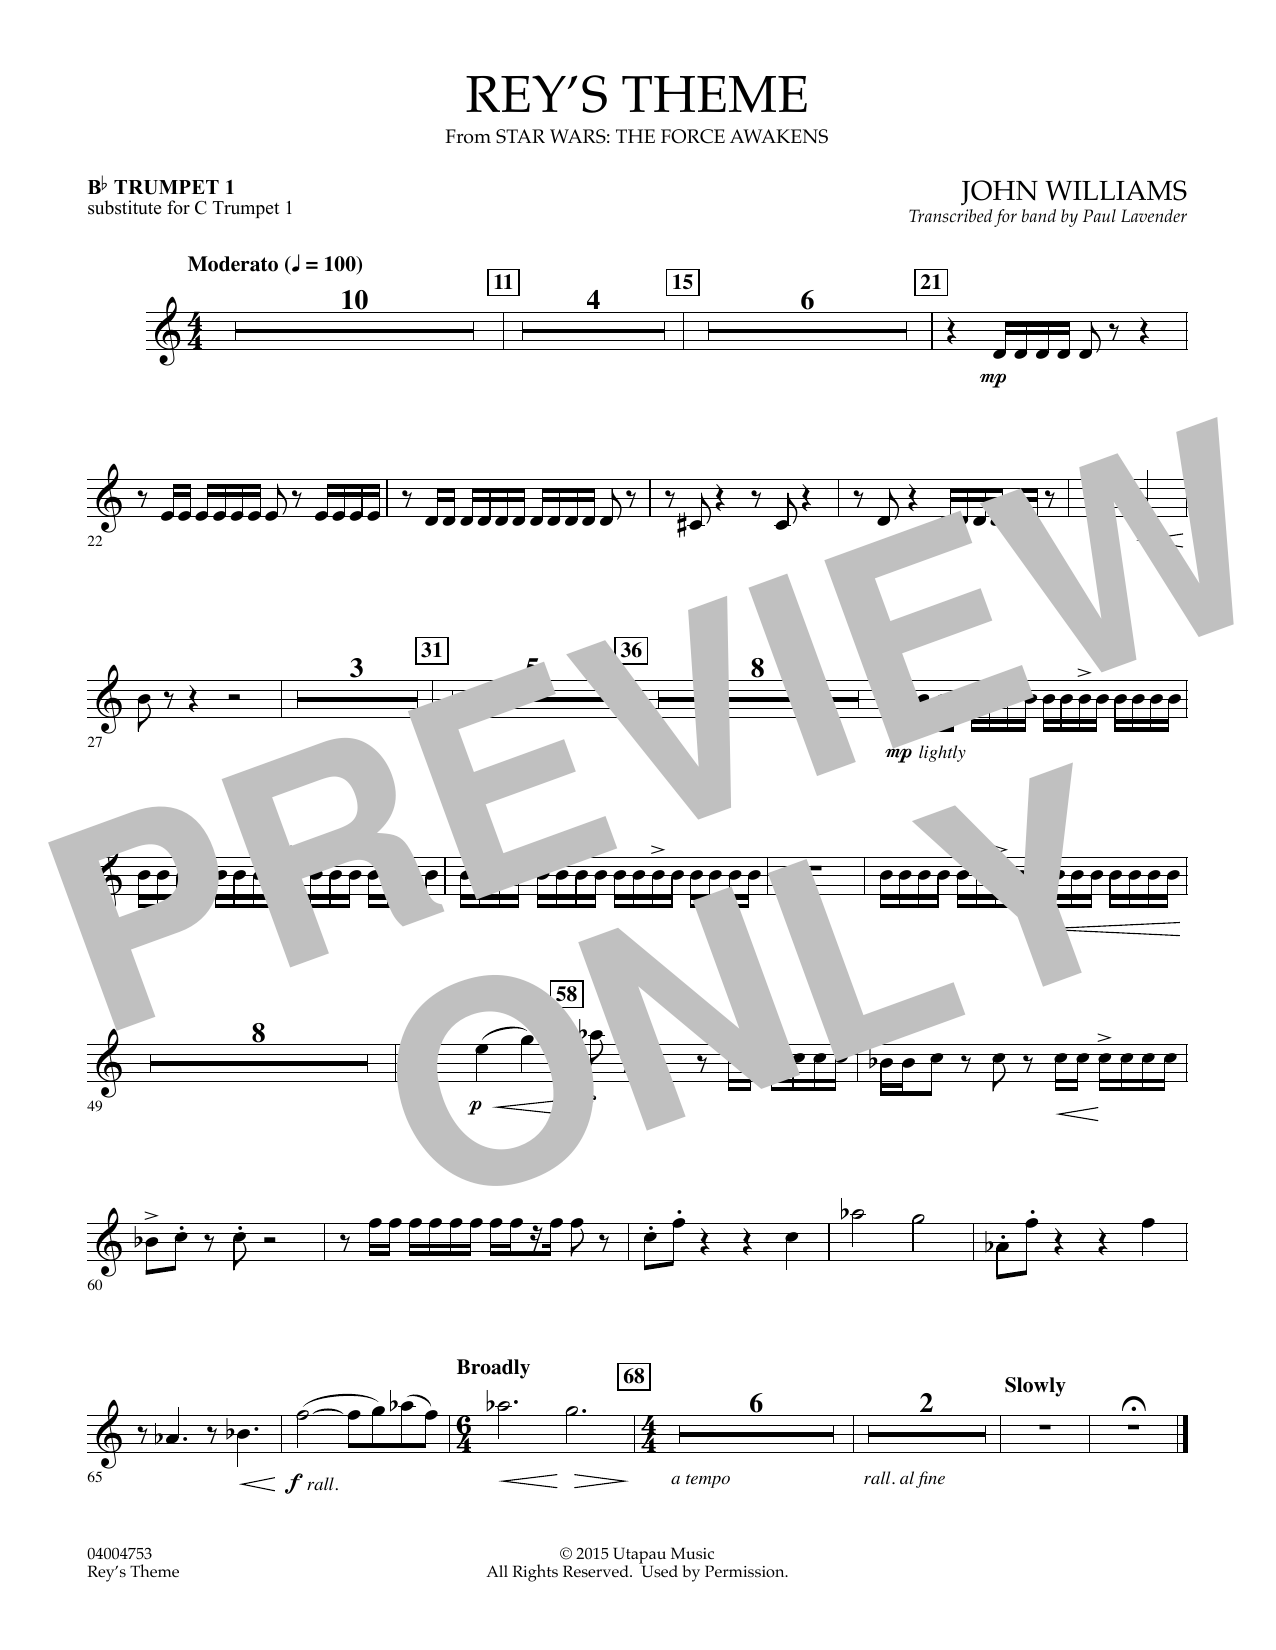 John Williams Rey's Theme (from Star Wars: The Force Awakens) - Bb Trumpet 1 (sub. C Tpt. 1) sheet music preview music notes and score for Concert Band including 1 page(s)